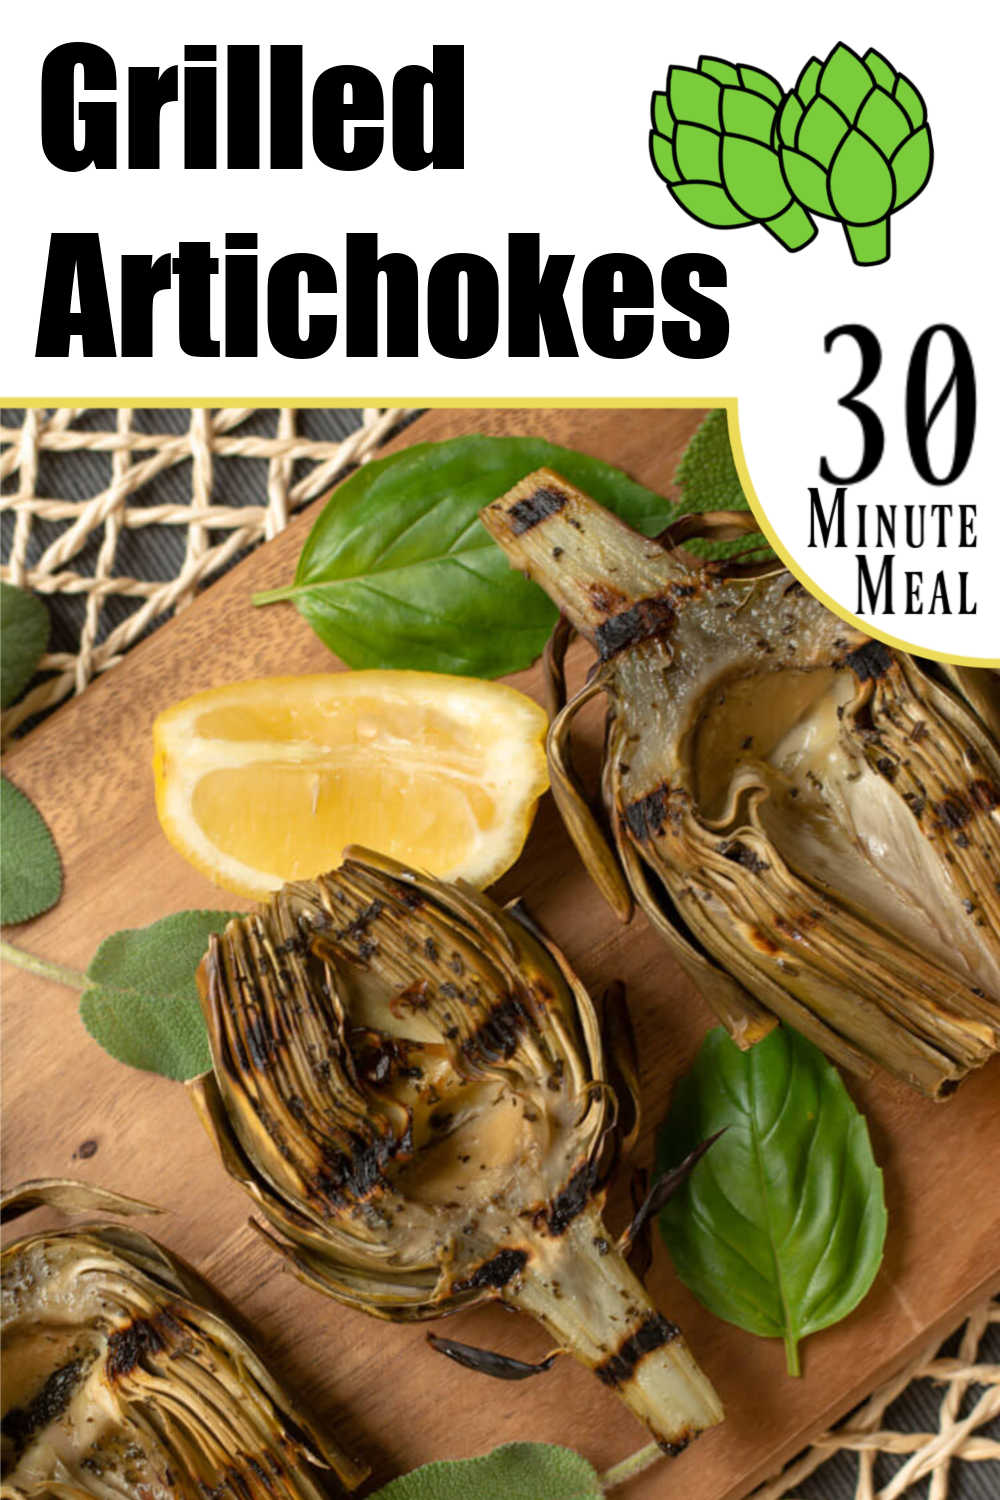 Grilled Artichokes with Basil and Sage